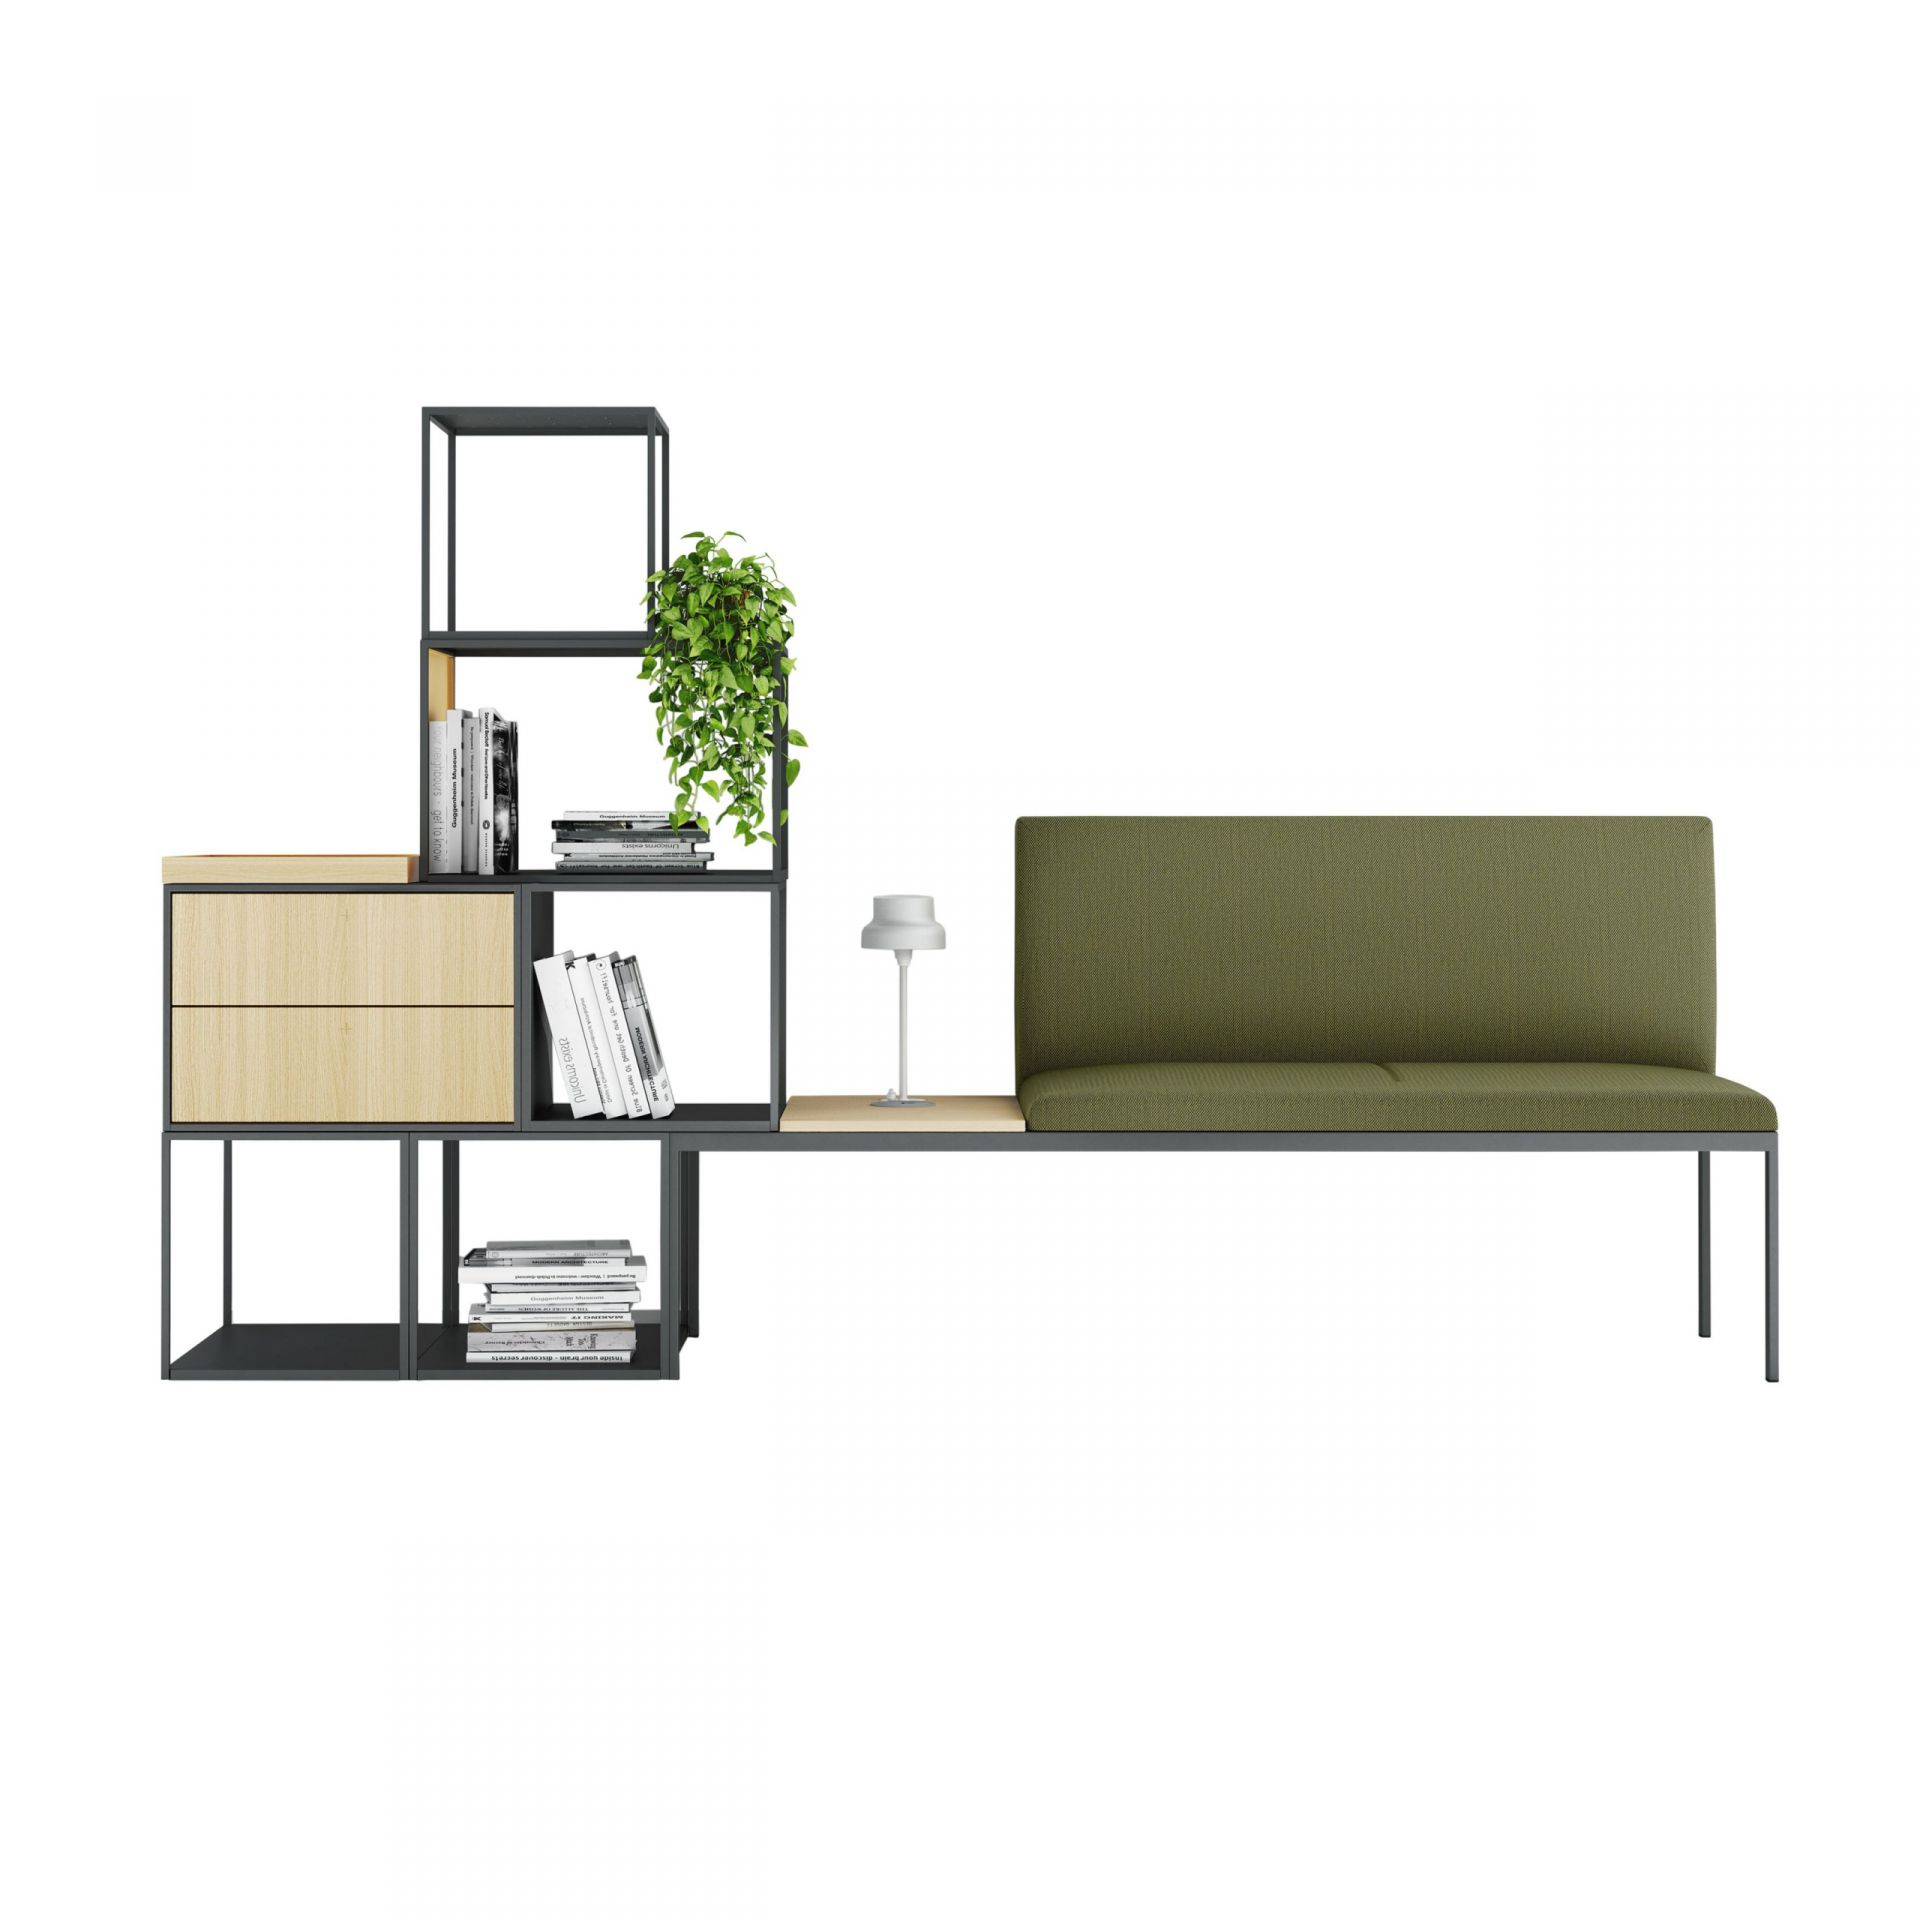 Create Seating Buildable modules: seating, storage and room-in-room product image 1